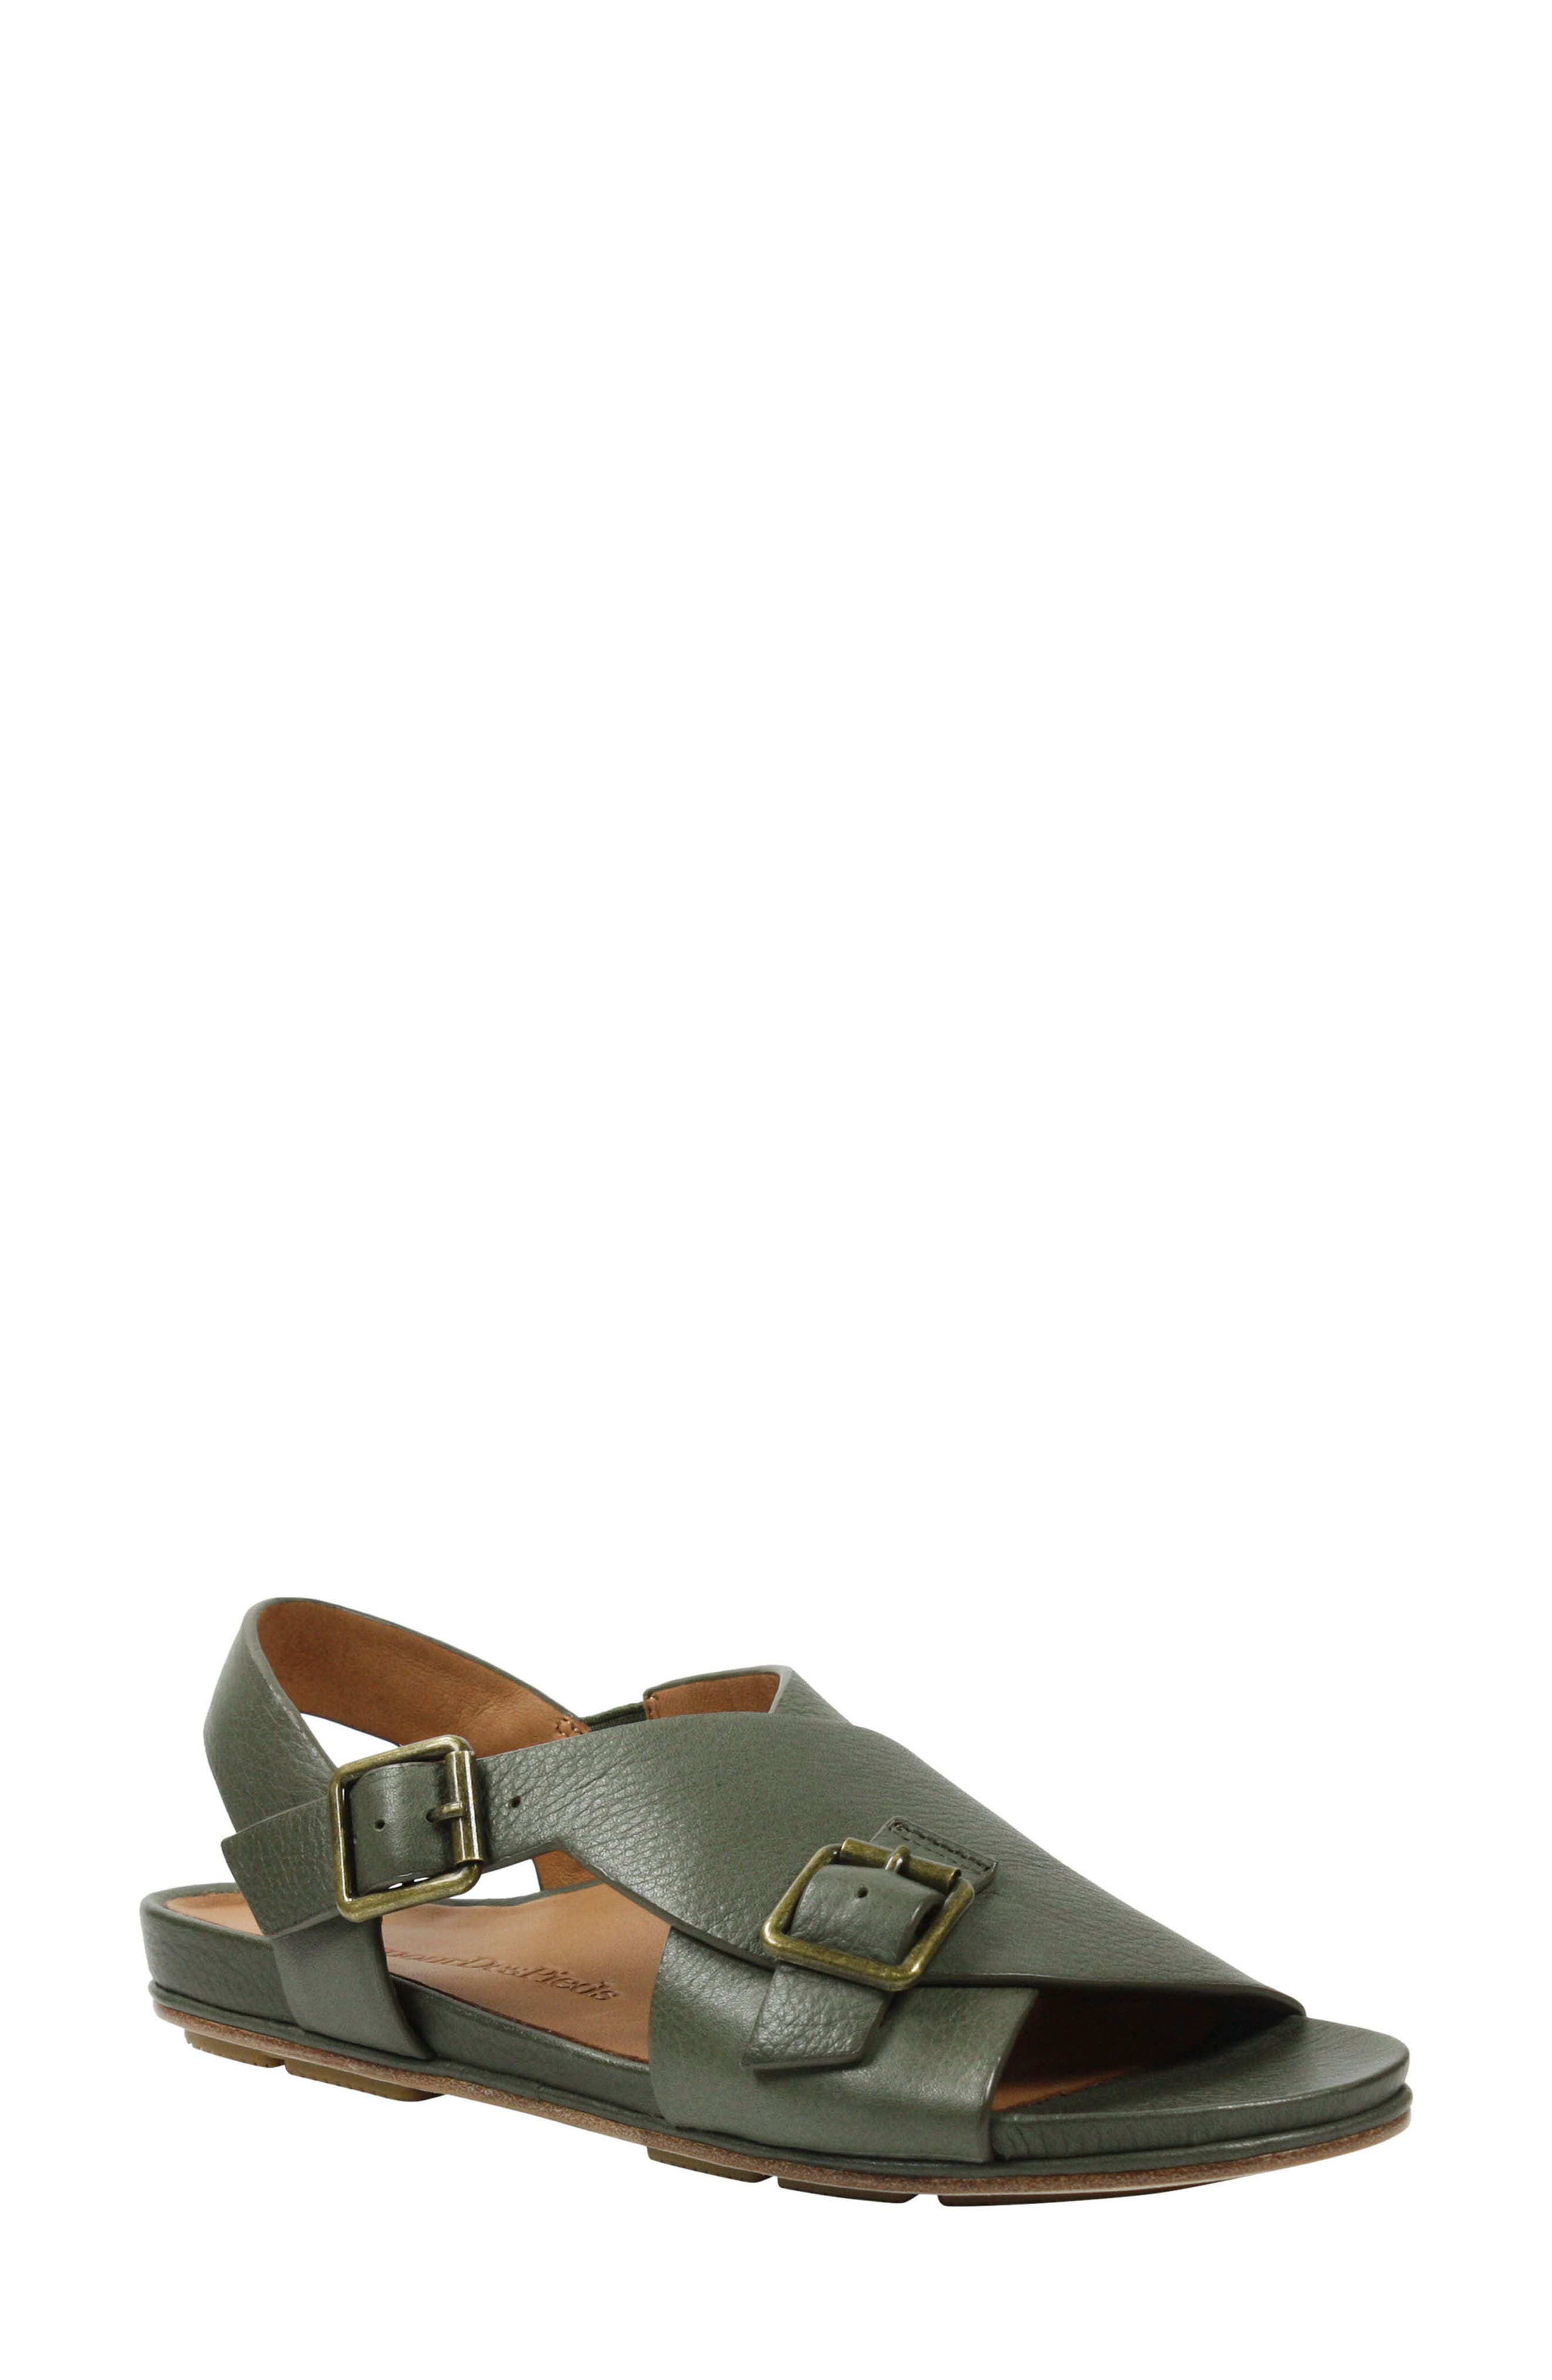 Dordogne Sandal,                         Main,                         color, Olive Leather